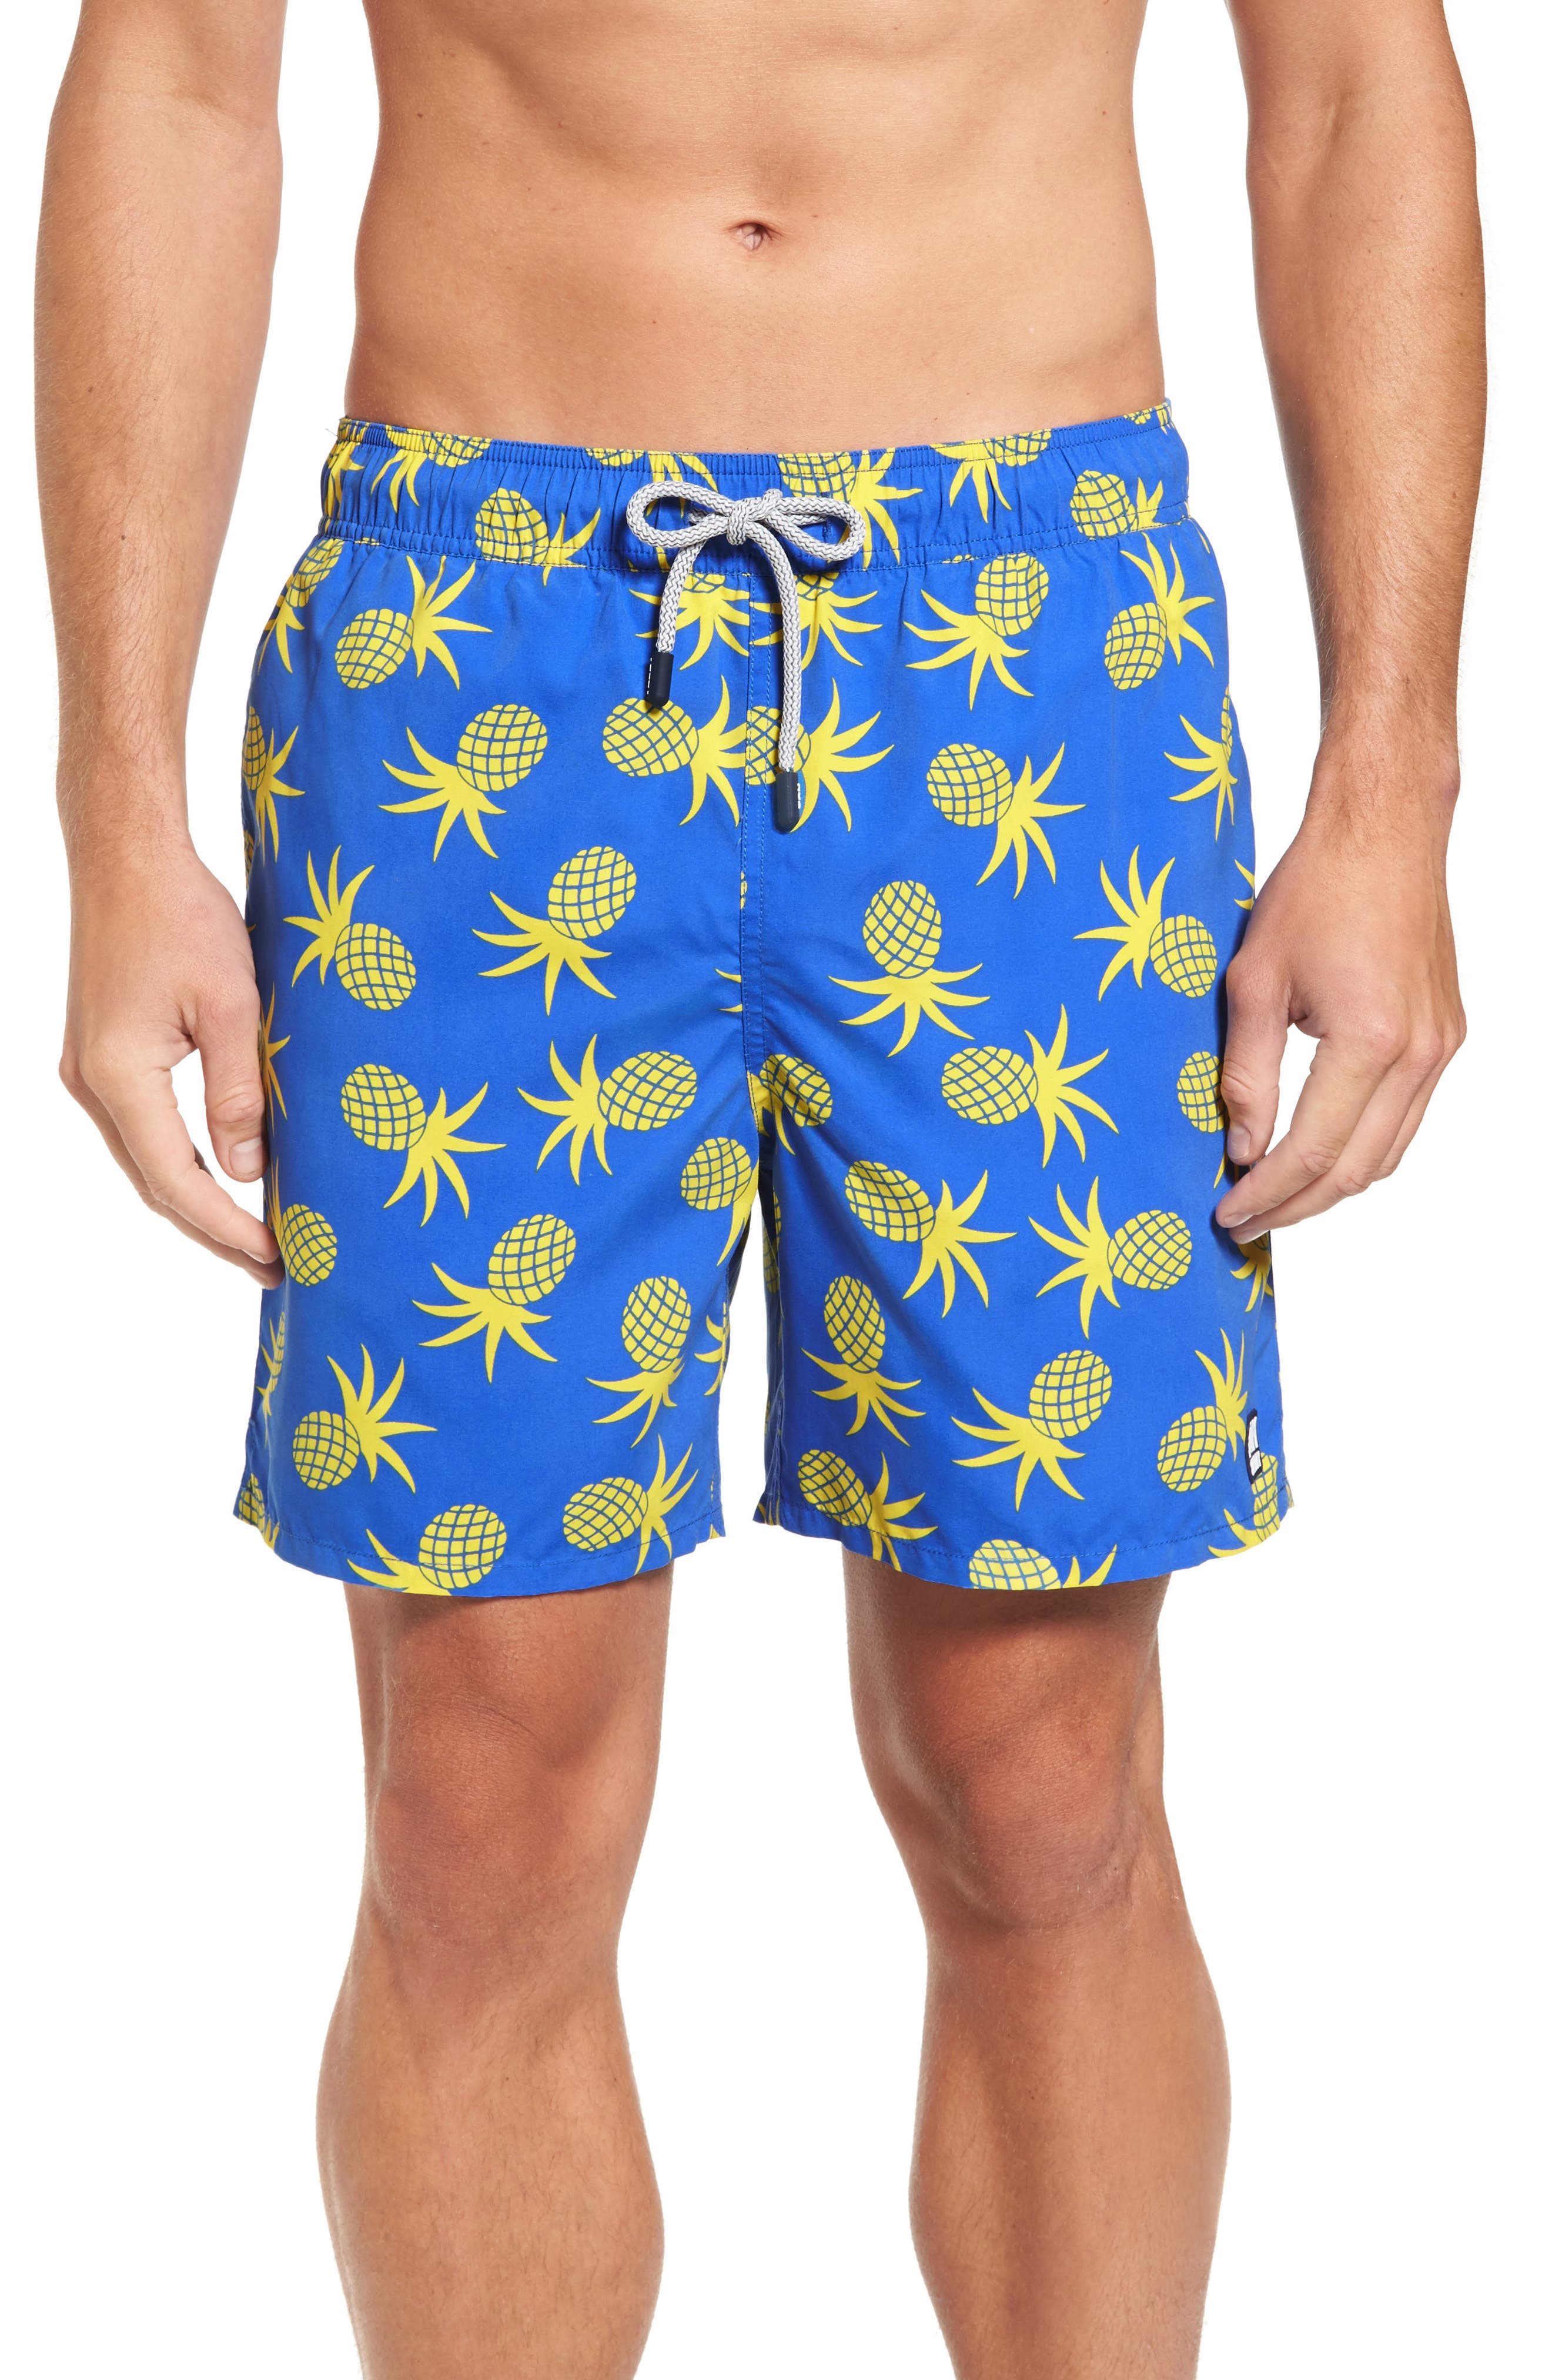 Main Image - Tom & Teddy Pineapple Swim Trunks